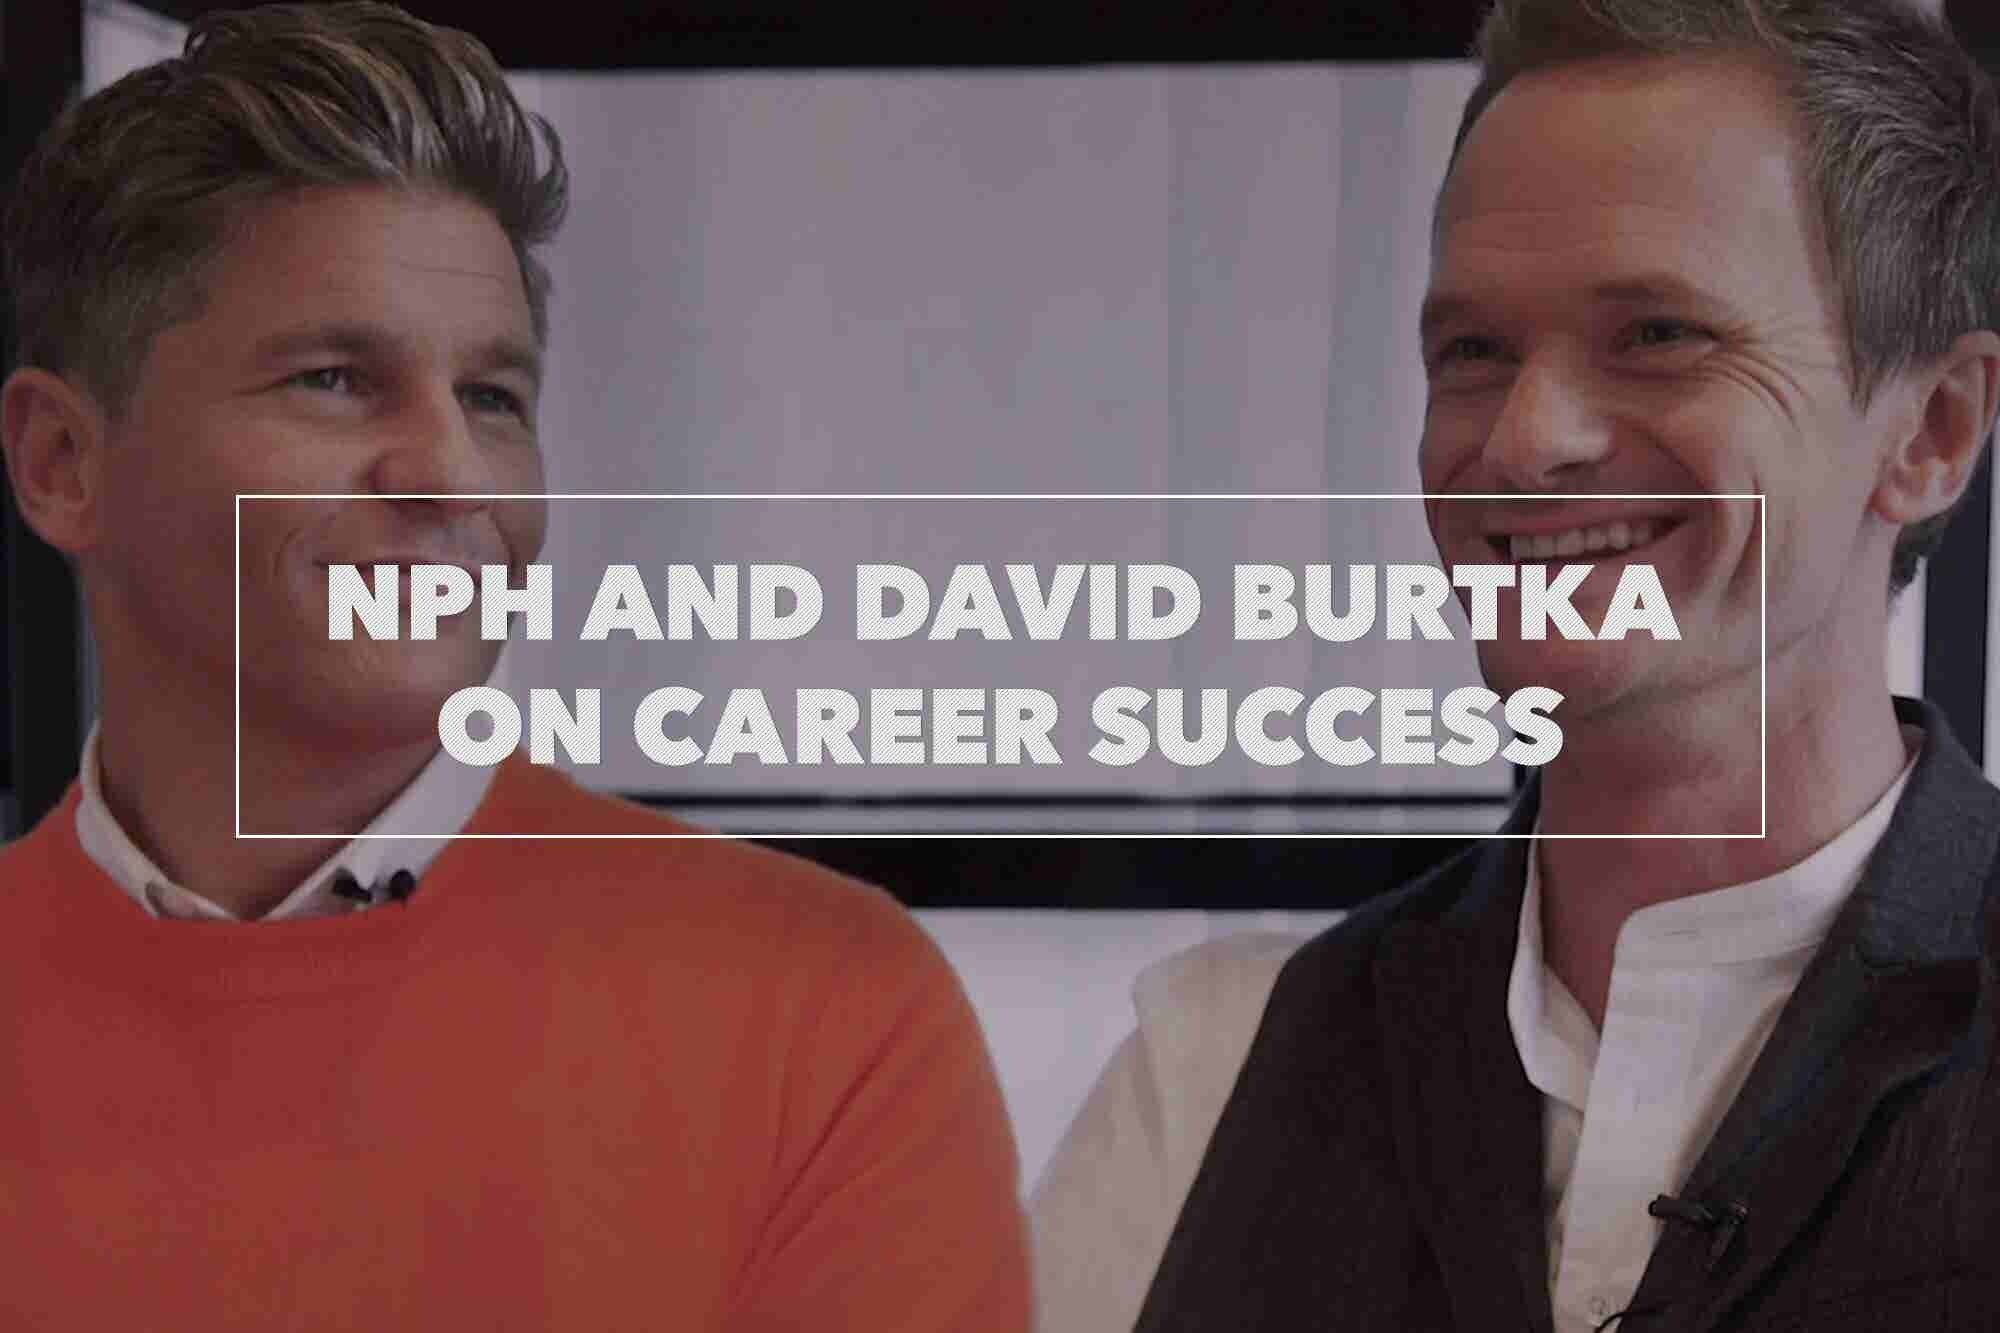 Neil Patrick Harris and David Burtka Reveal Top Tips for Career Success (Video)